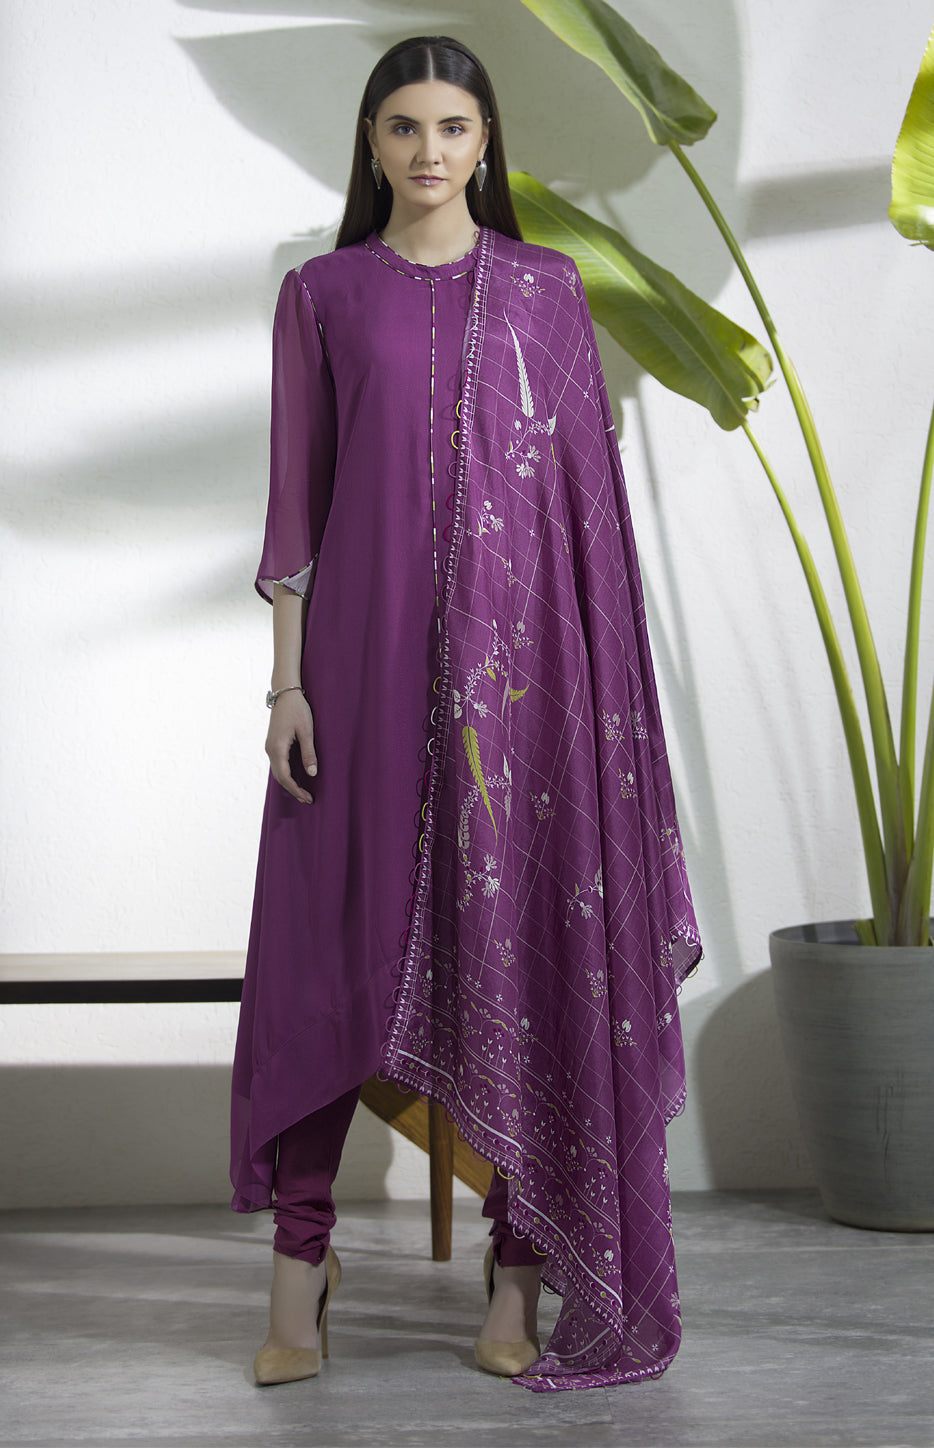 Falsa Anarkali With Patterned Dupatta in Georgette and Habotai Silk -2942